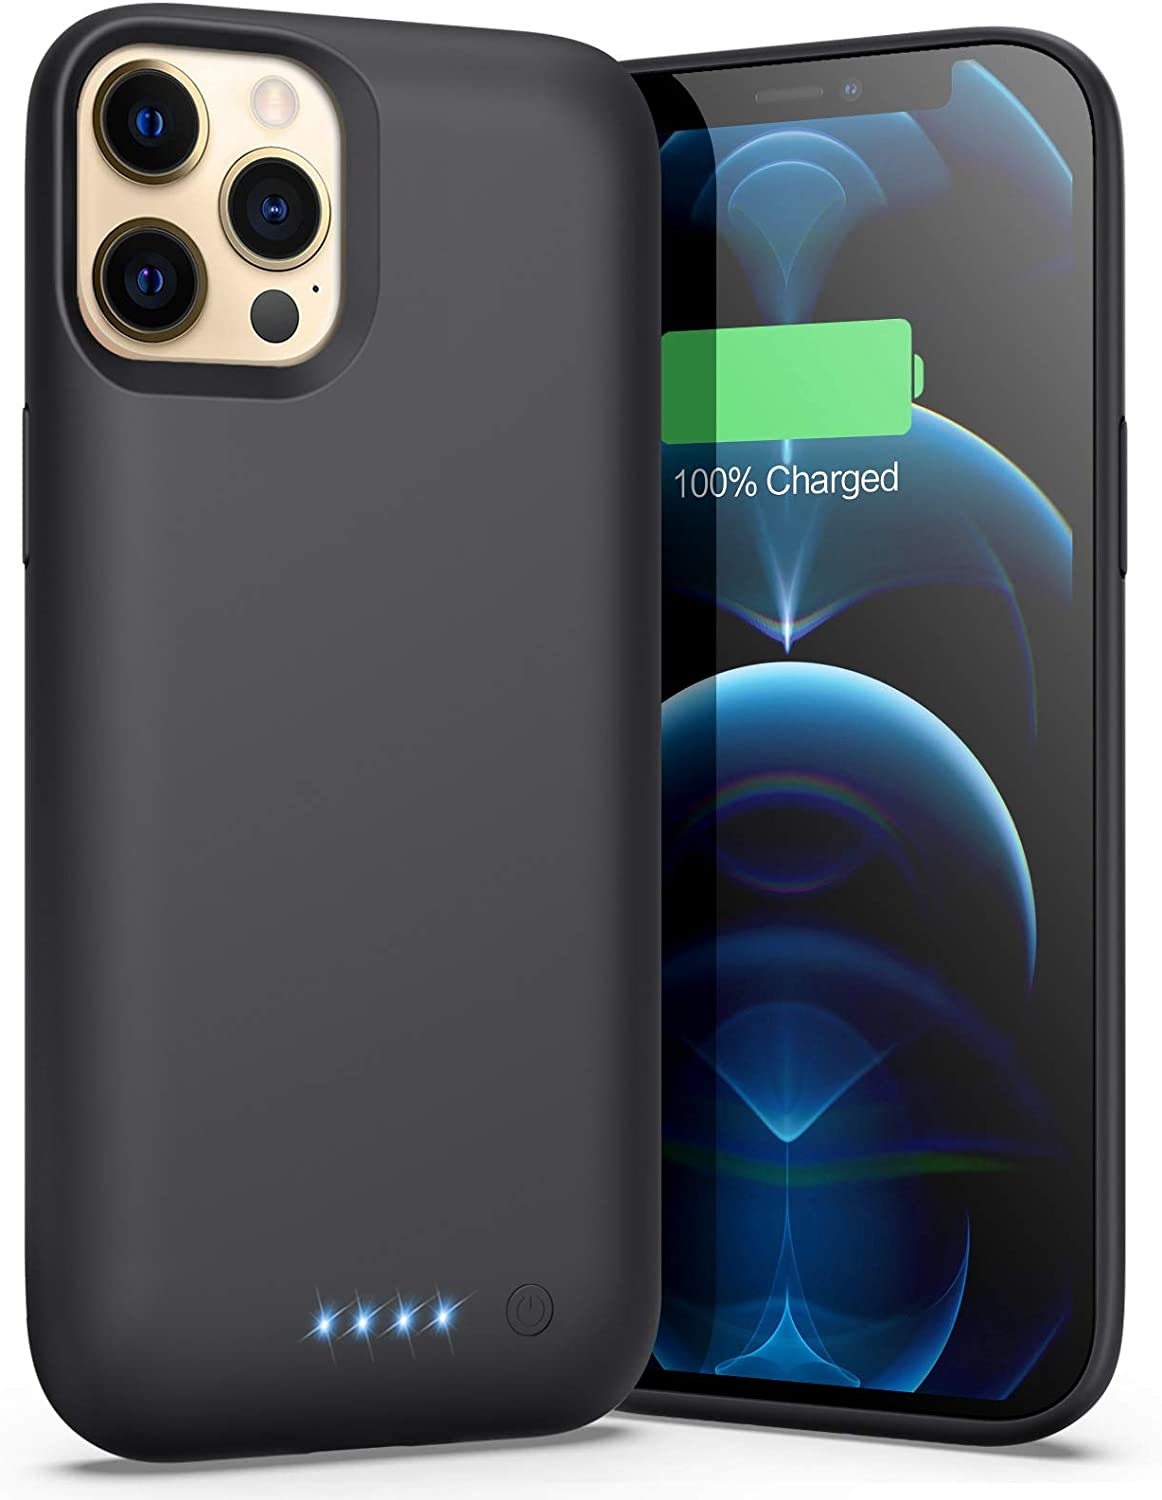 Battery Case for iPhone 12 Pro Max (6.7inch), [7800mAh] Portable Protective Charging Case Extended Battery Pack Rechargeable Slim Charger Case for Apple iPhone 12 Pro Max (Black)